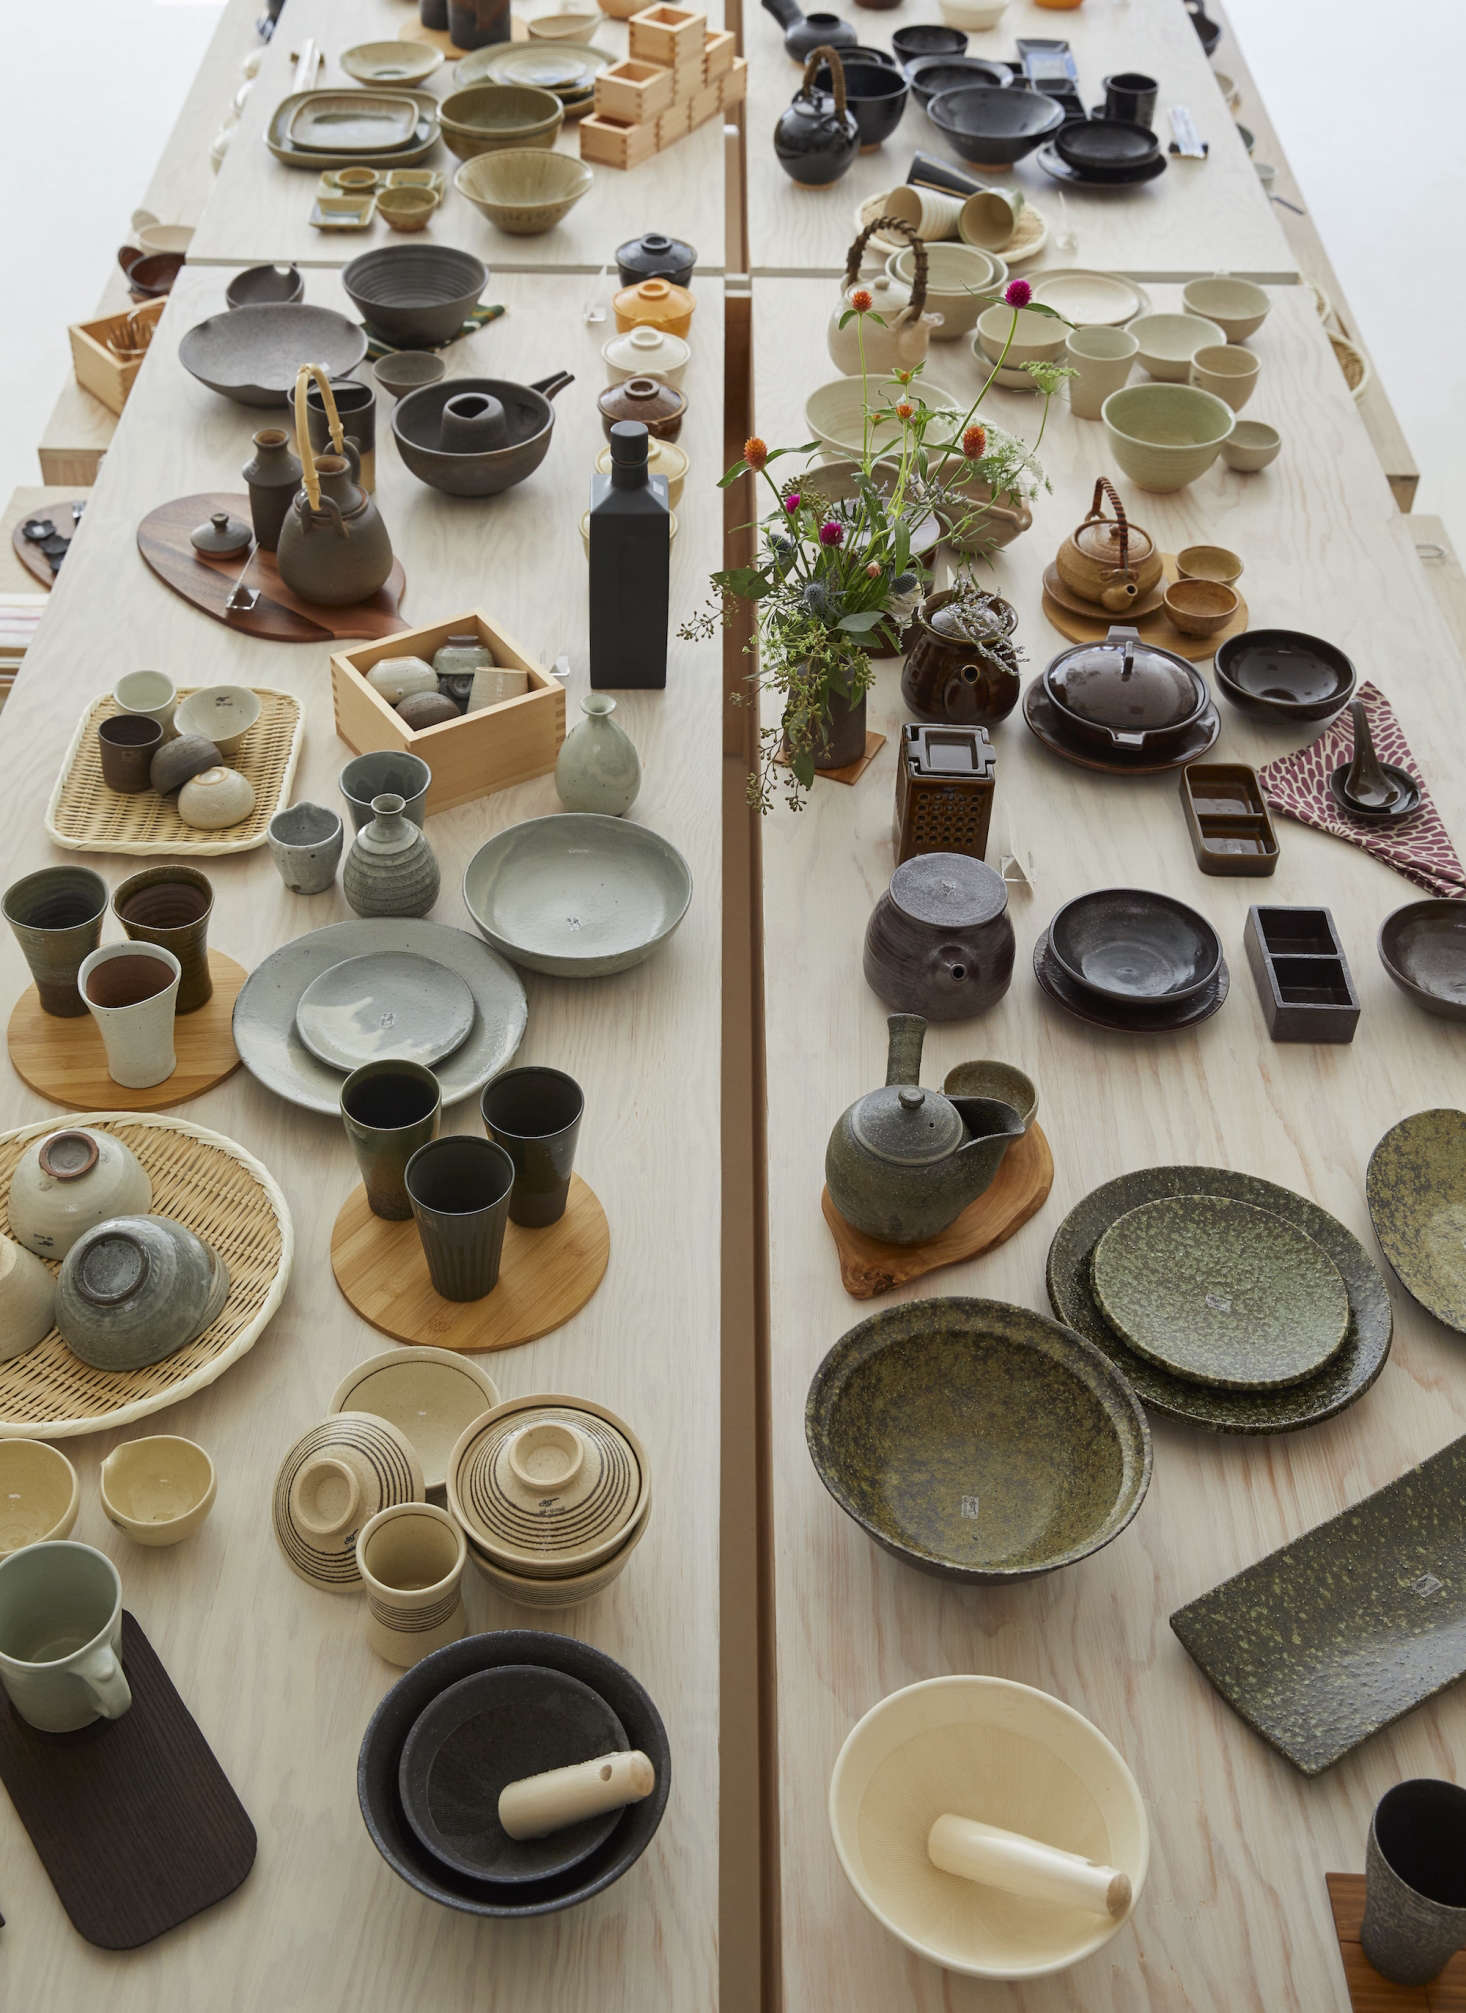 Displayed on tables and benches at the center of the store, the wares include Iga-yaki ceramics—including Sake Flasks, Rice Bowls, and Suribachi Sets (a Japanese mortar and pestle).